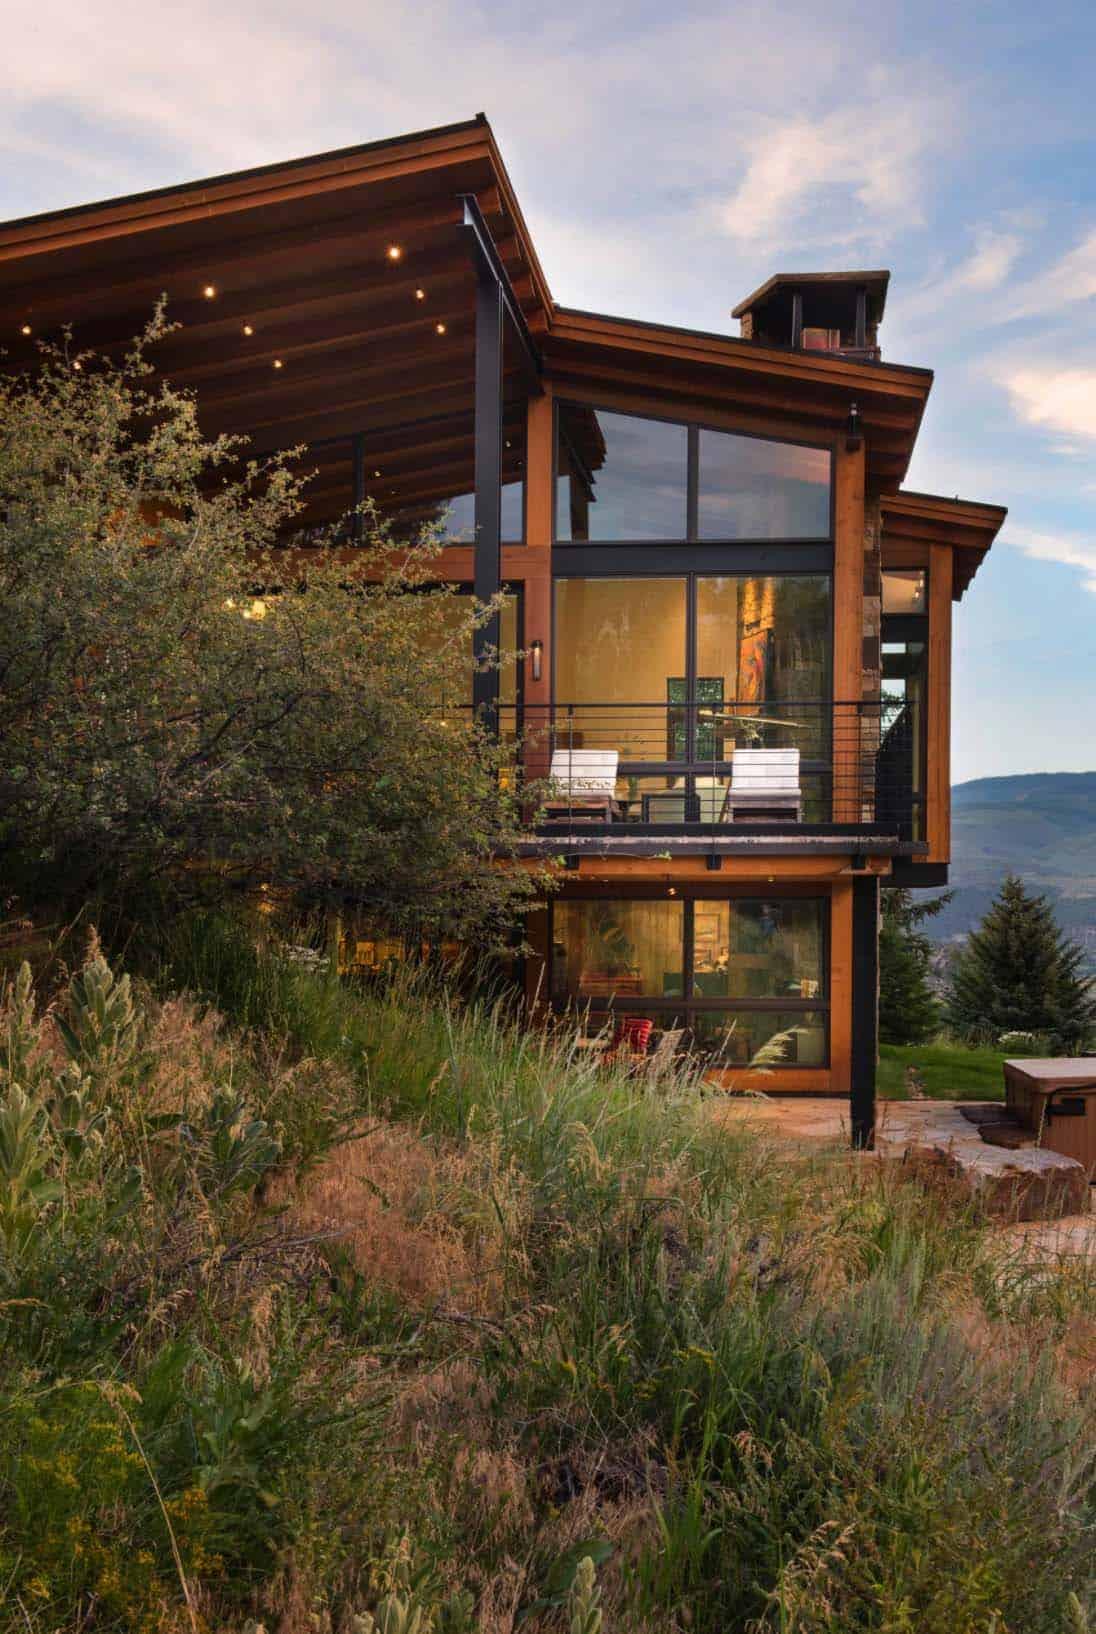 Contemporary Mountain Home Renovation-Berglund Architects-18-1 Kindesign